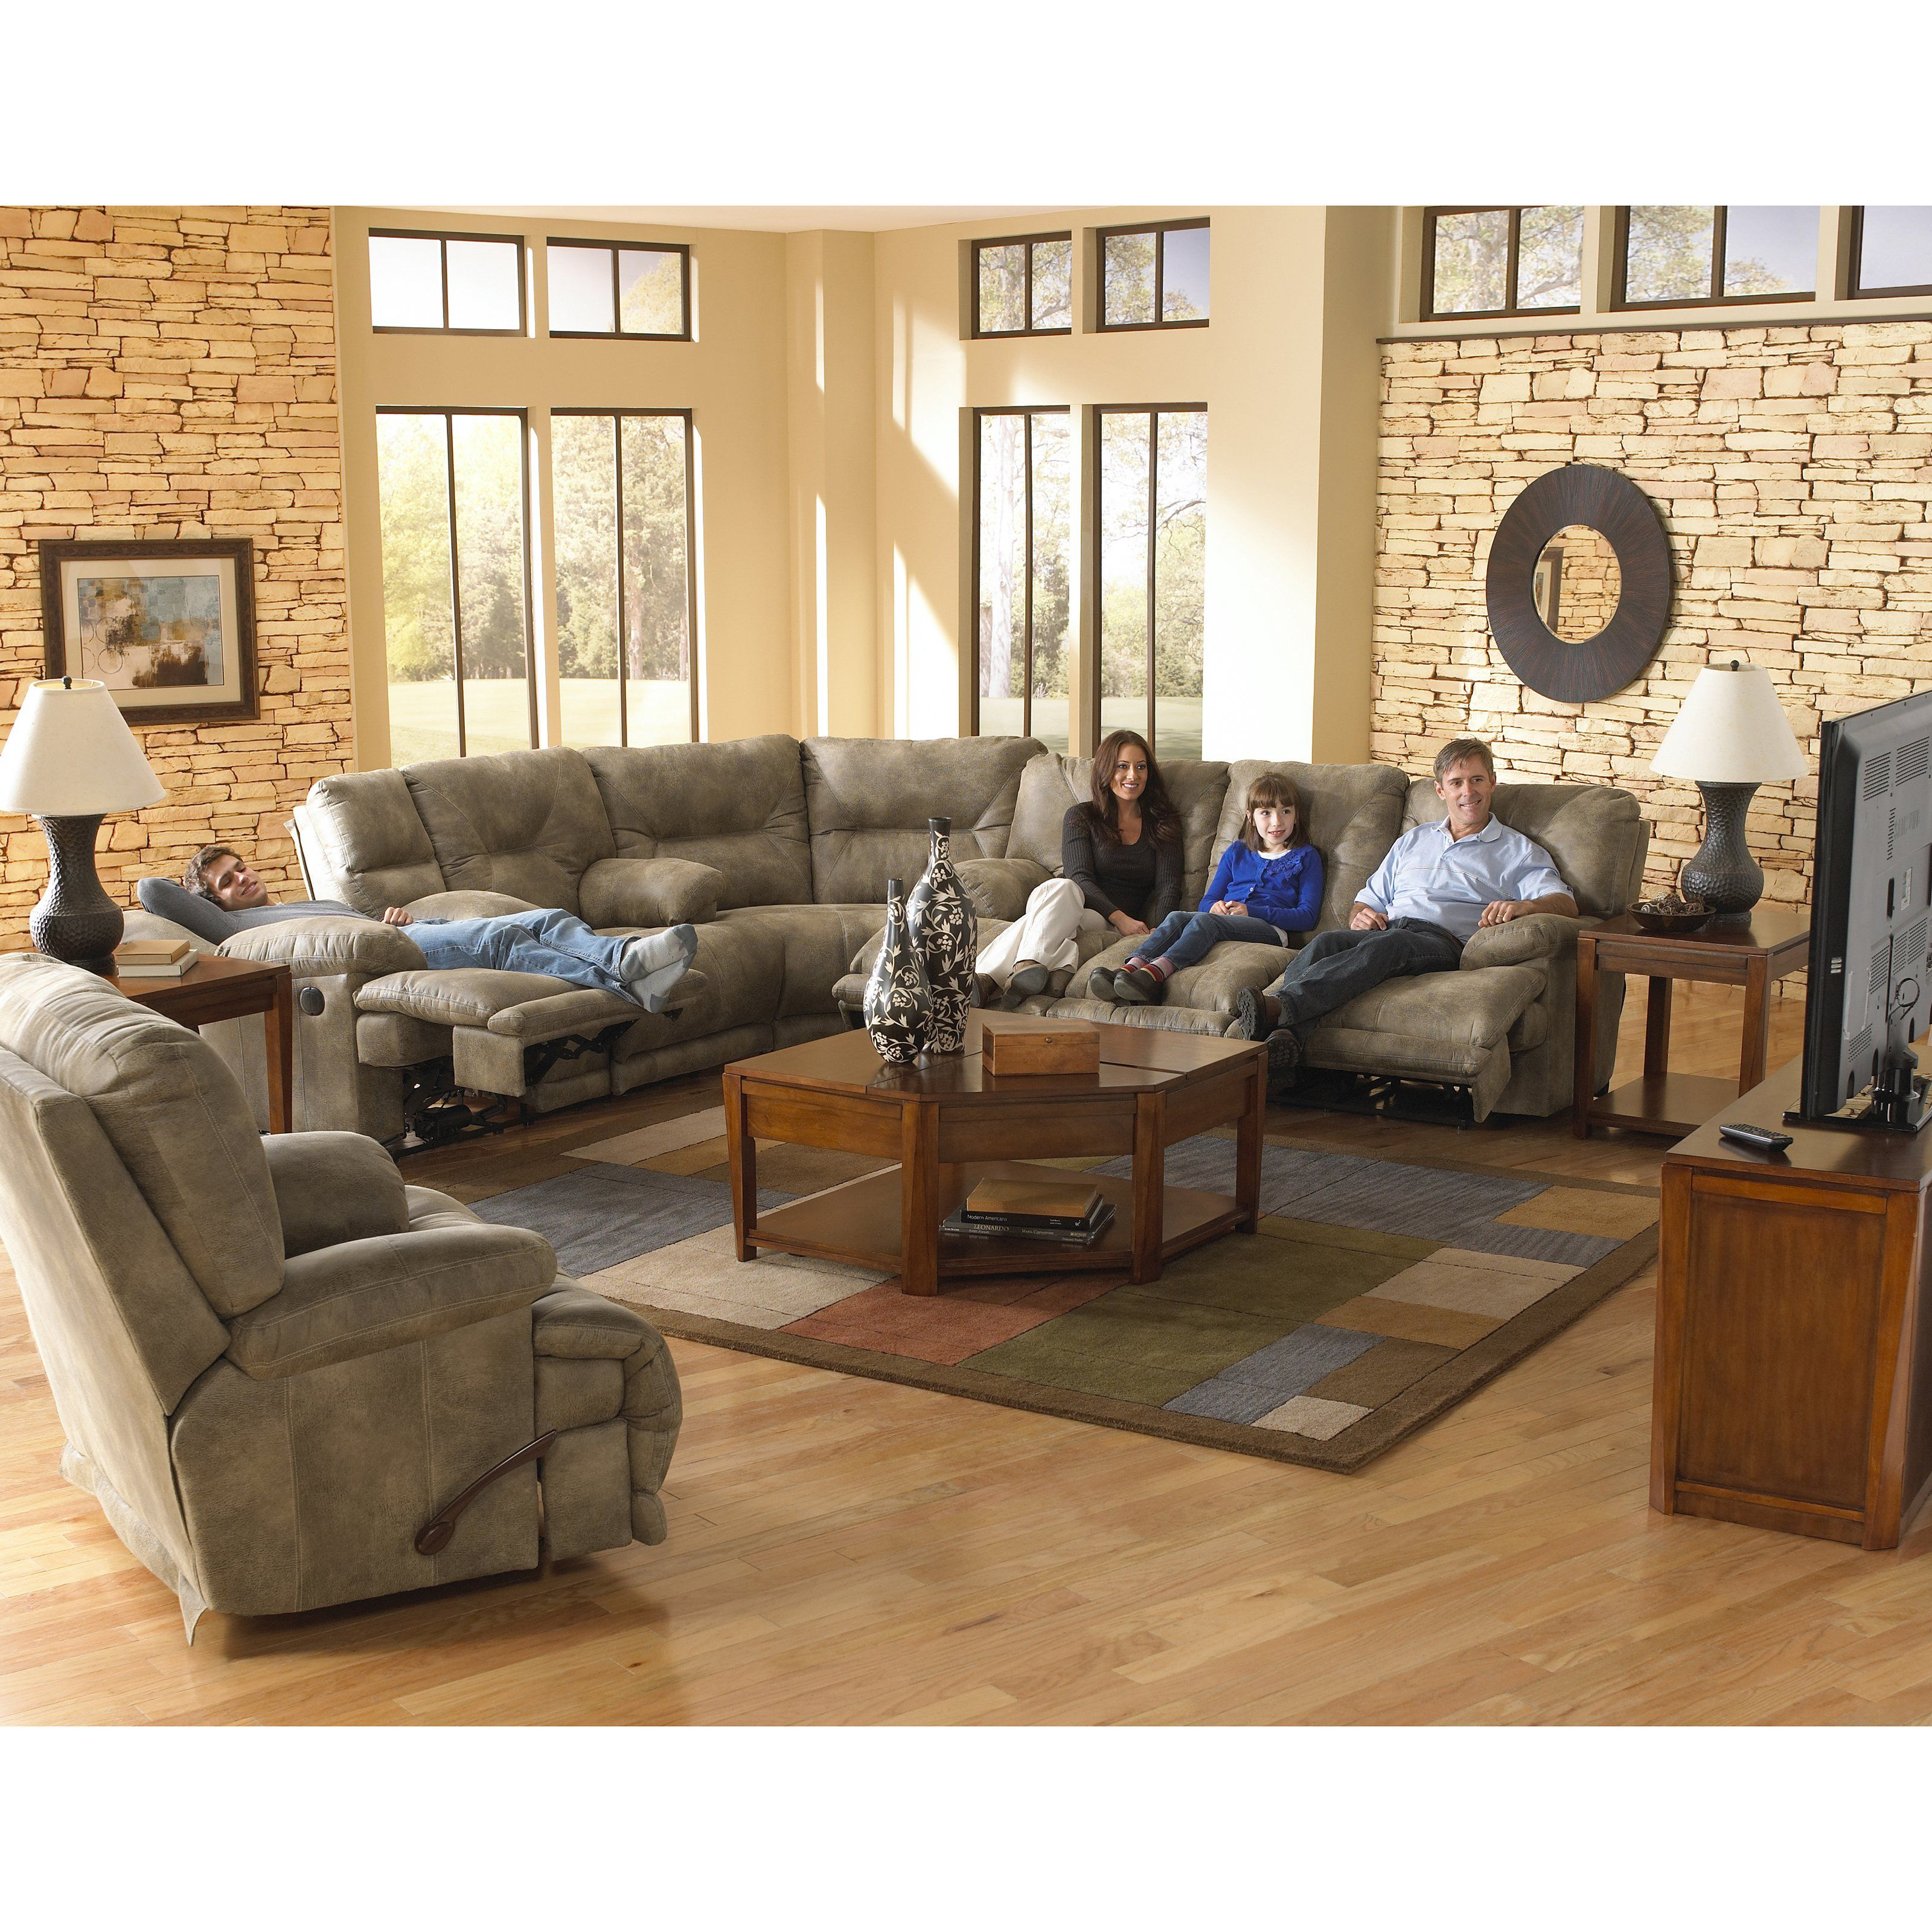 Catnapper Voyager Reclining Sectional Set Brandy Cat338 Sectional Living Room Sets